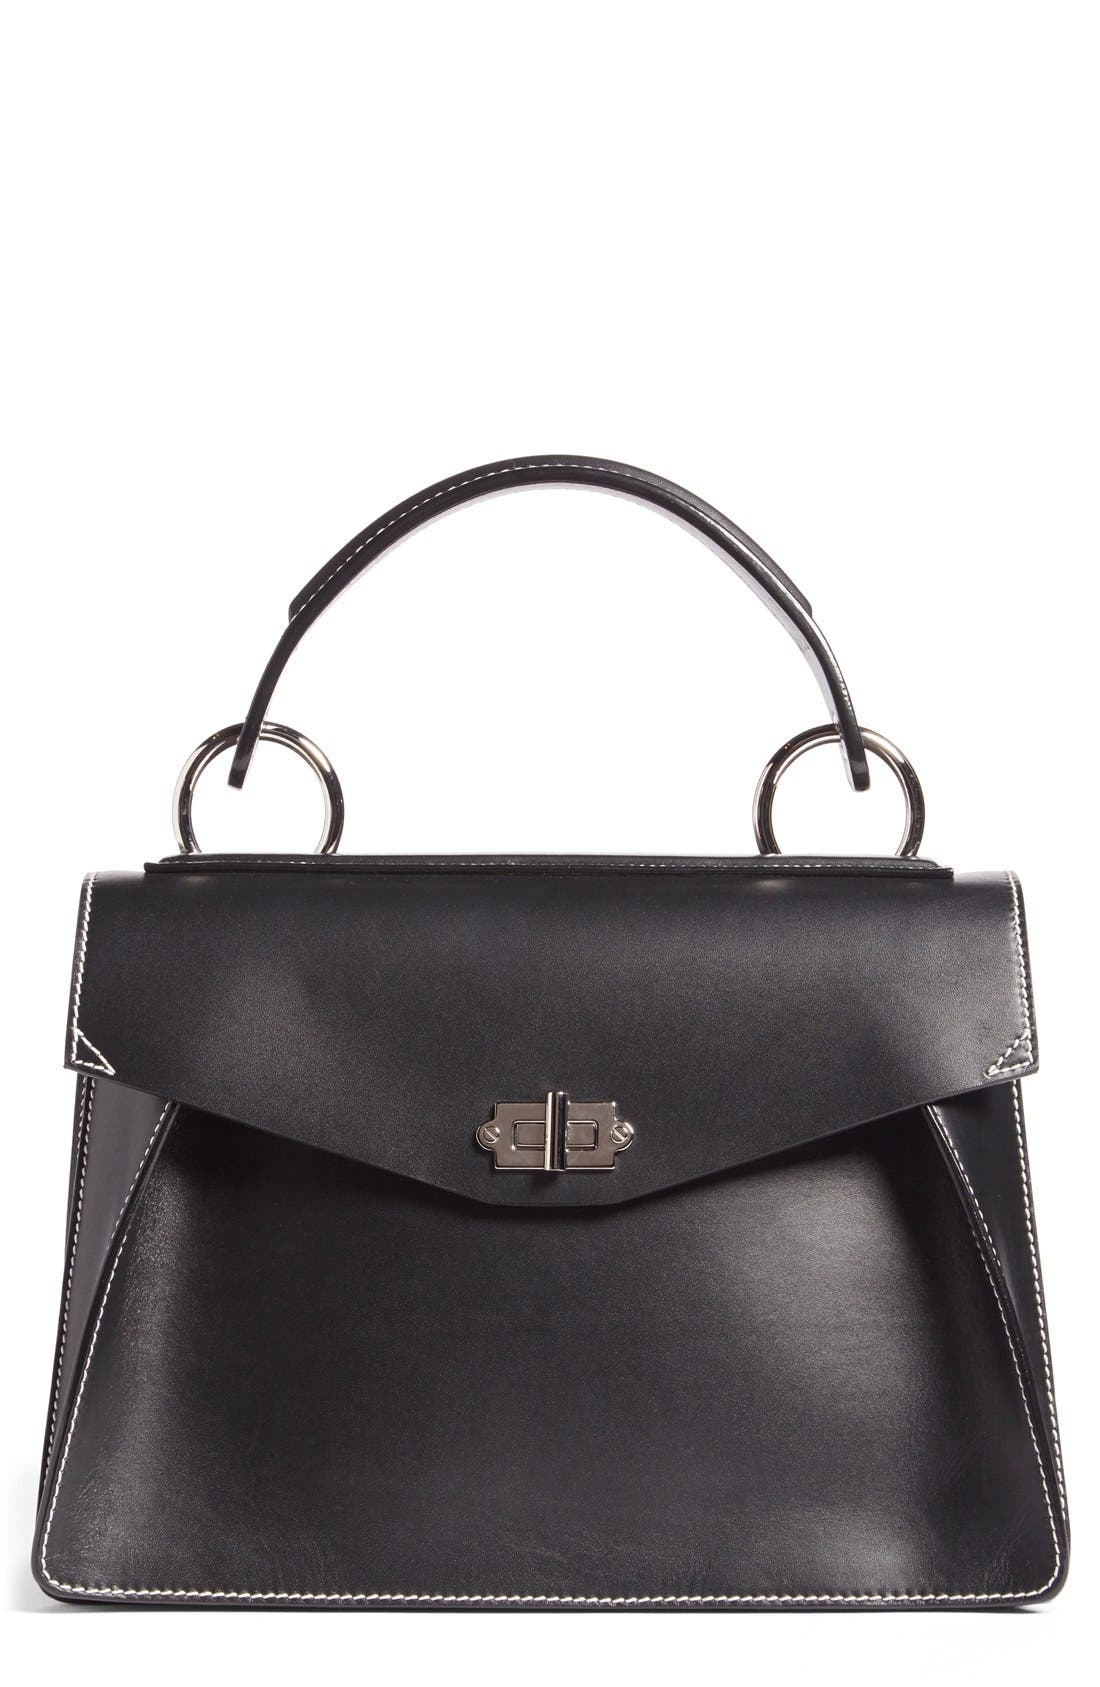 PROENZA SCHOULER Medium Hava Top Handle Calfskin Leather Satchel